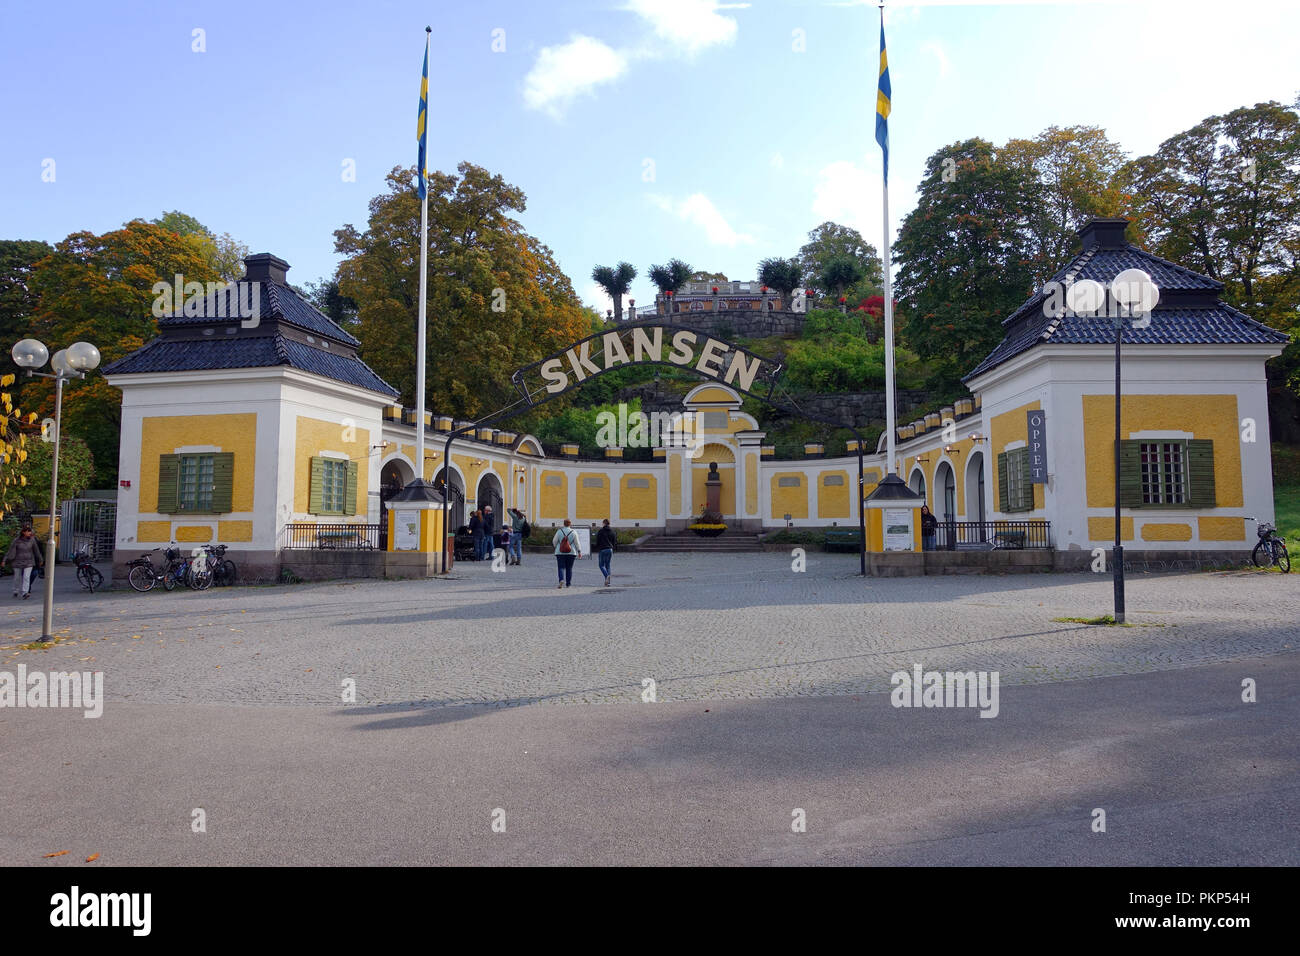 STOCKHOLM, SWEDEN - SEPTEMBER 30, 2017: Entrance to Skansen, an open-air museum and zoo in Sweden located on the island Djurgården in Stockholm. - Stock Image